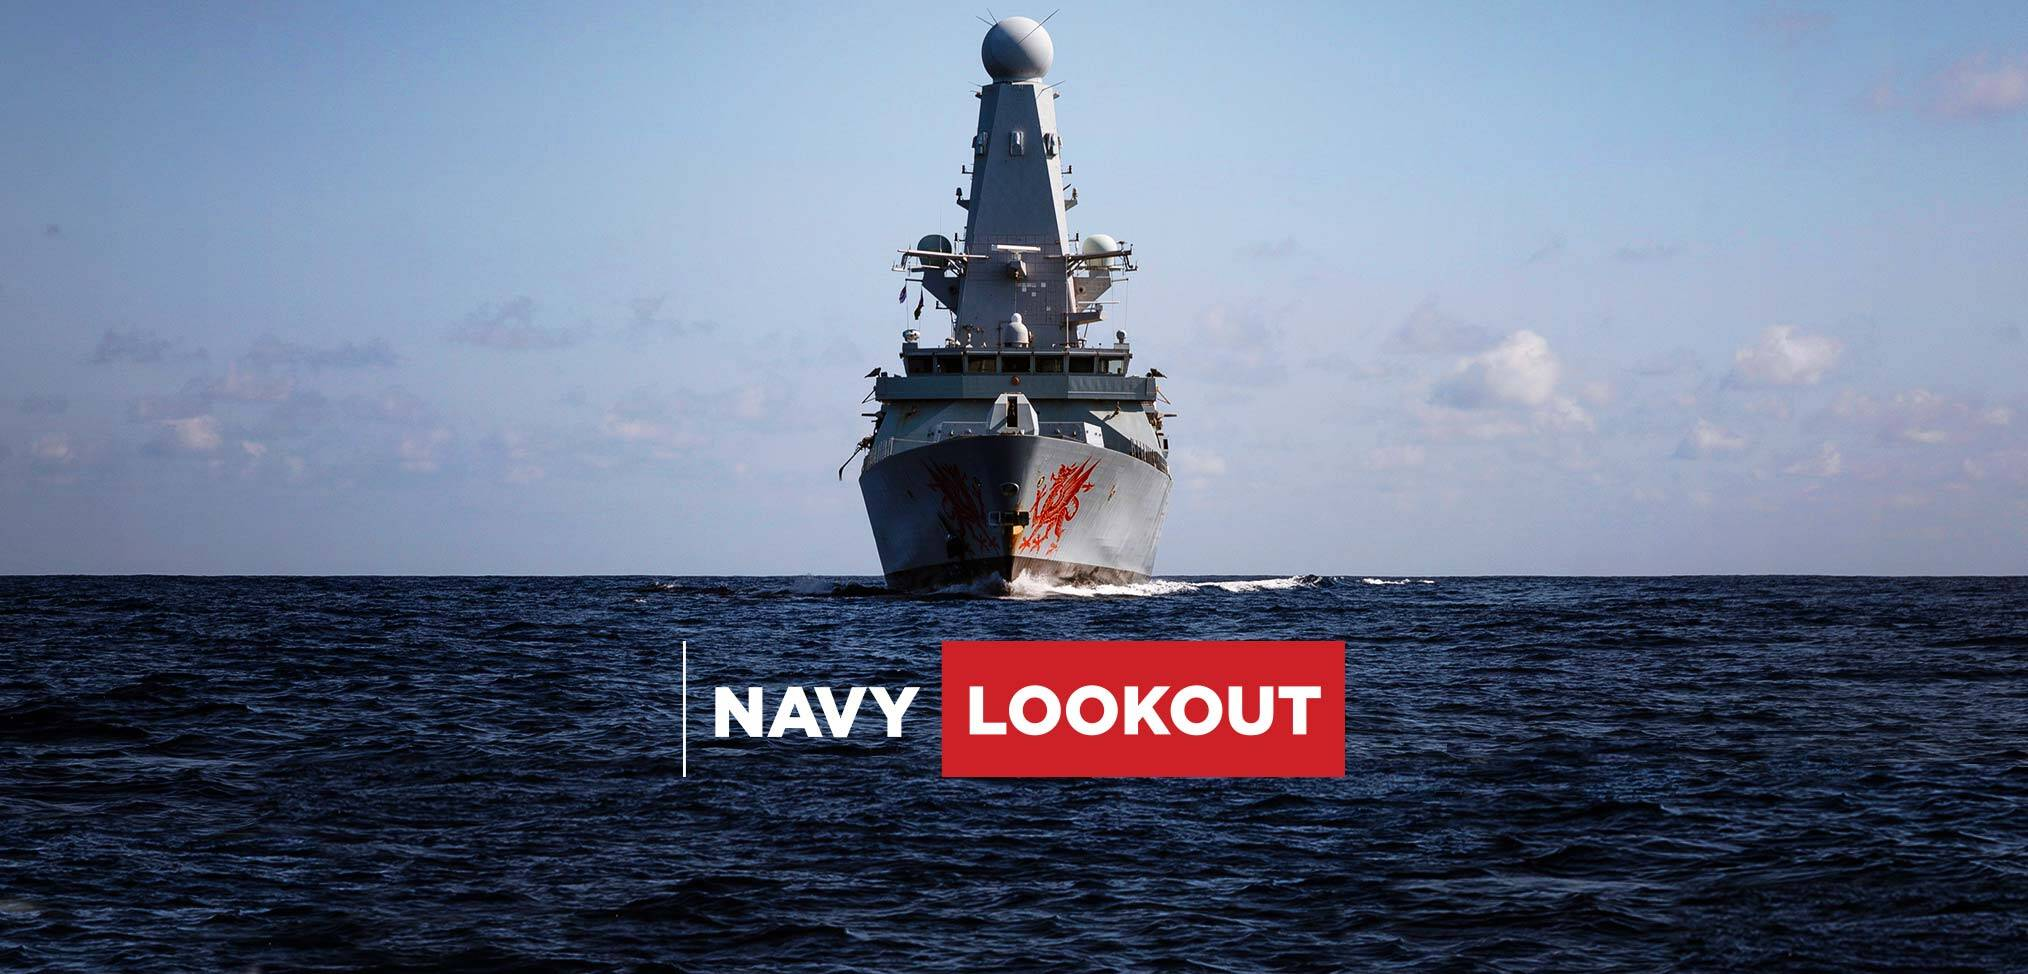 Save the Royal Navy is being re-branded as Navy Lookout